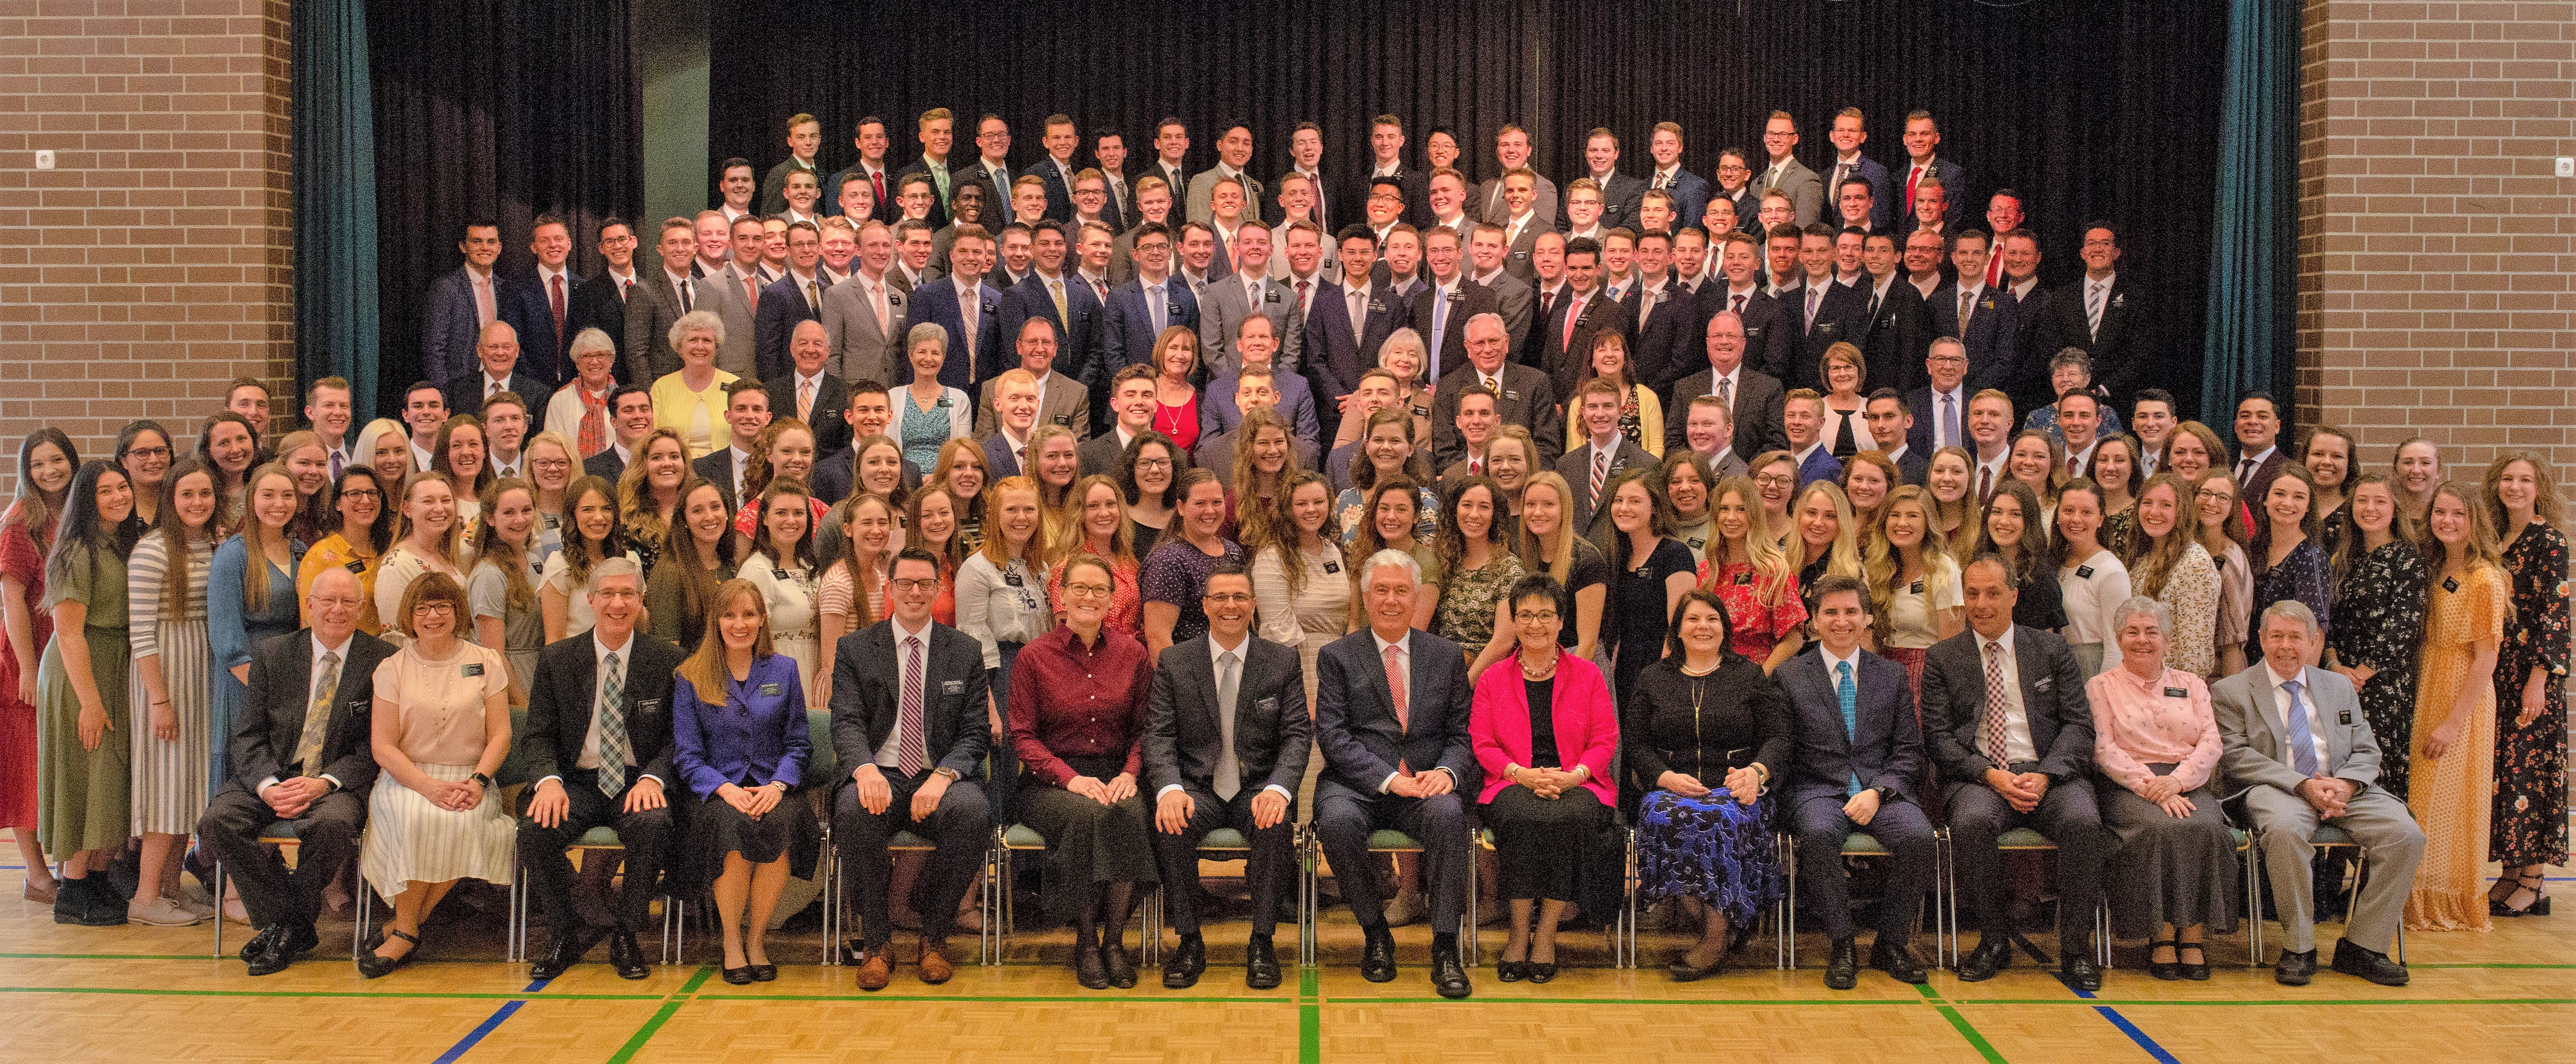 Elder Dieter F. Uchtdorf and his wife, Sister Harriet Uchtdorf, are front and center in a mission photo with the leaders and missionaries of the Germany Berlin Mission on April 26, 2019.